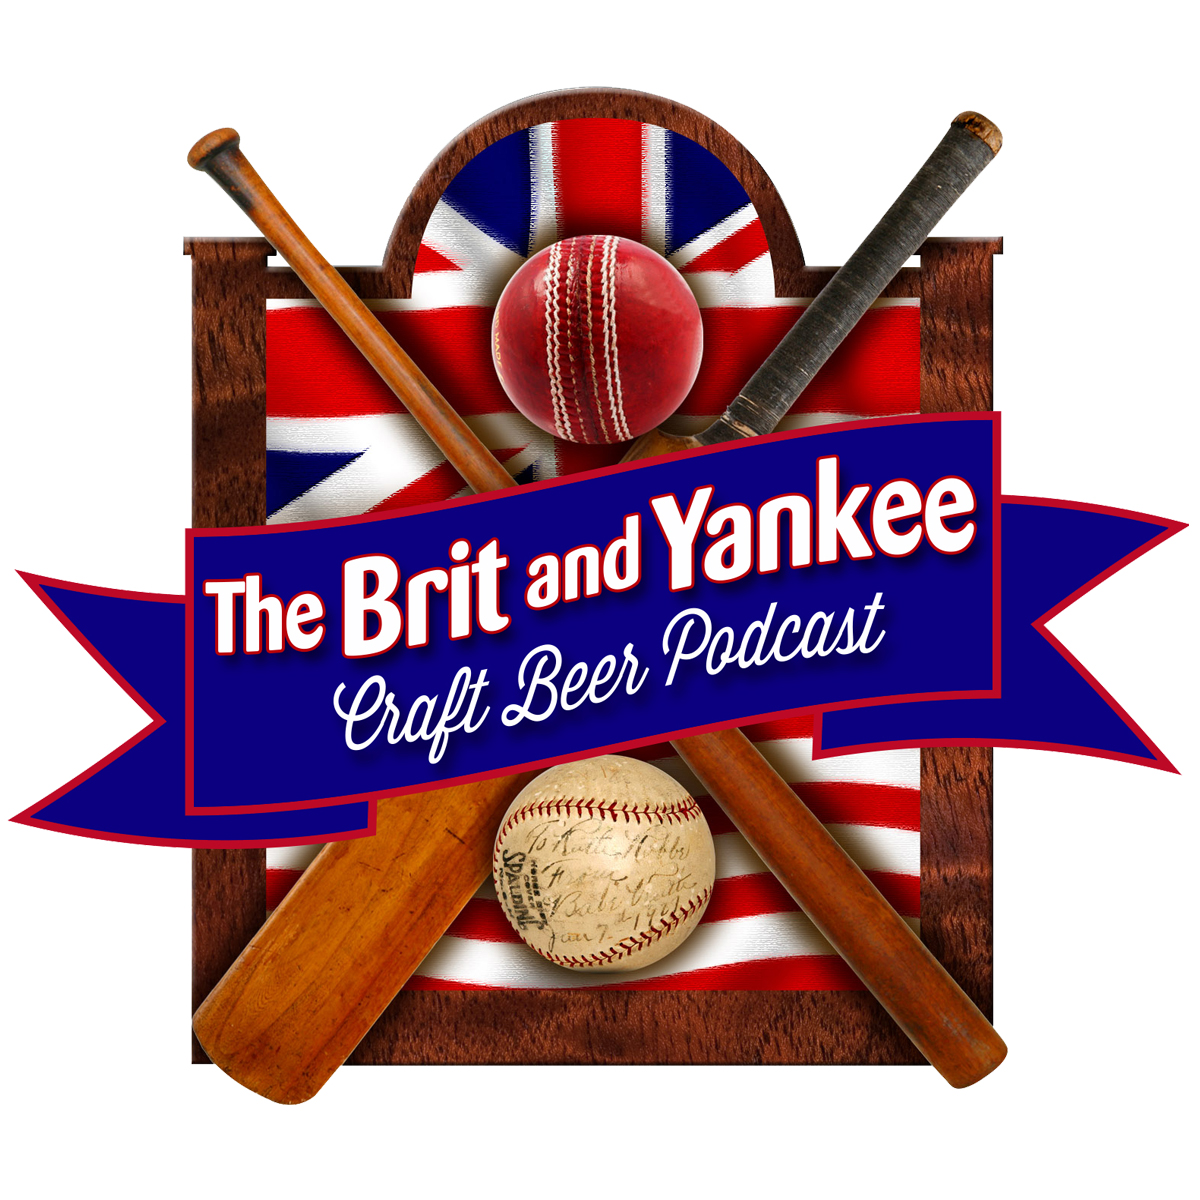 Pubcast from The Brit and Yankee